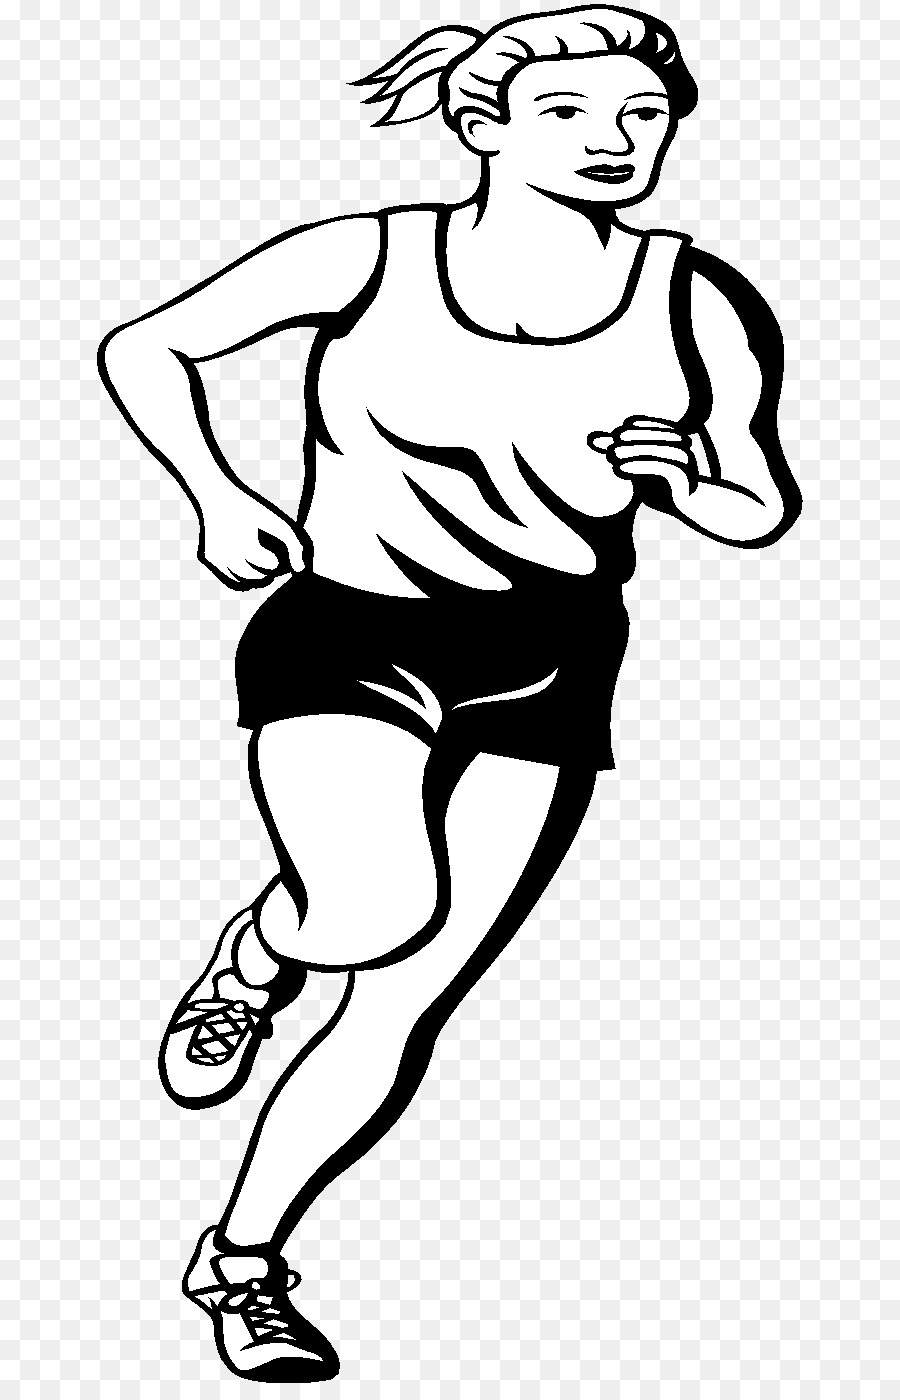 Athletic clipart black and white. Clip art athlete sports